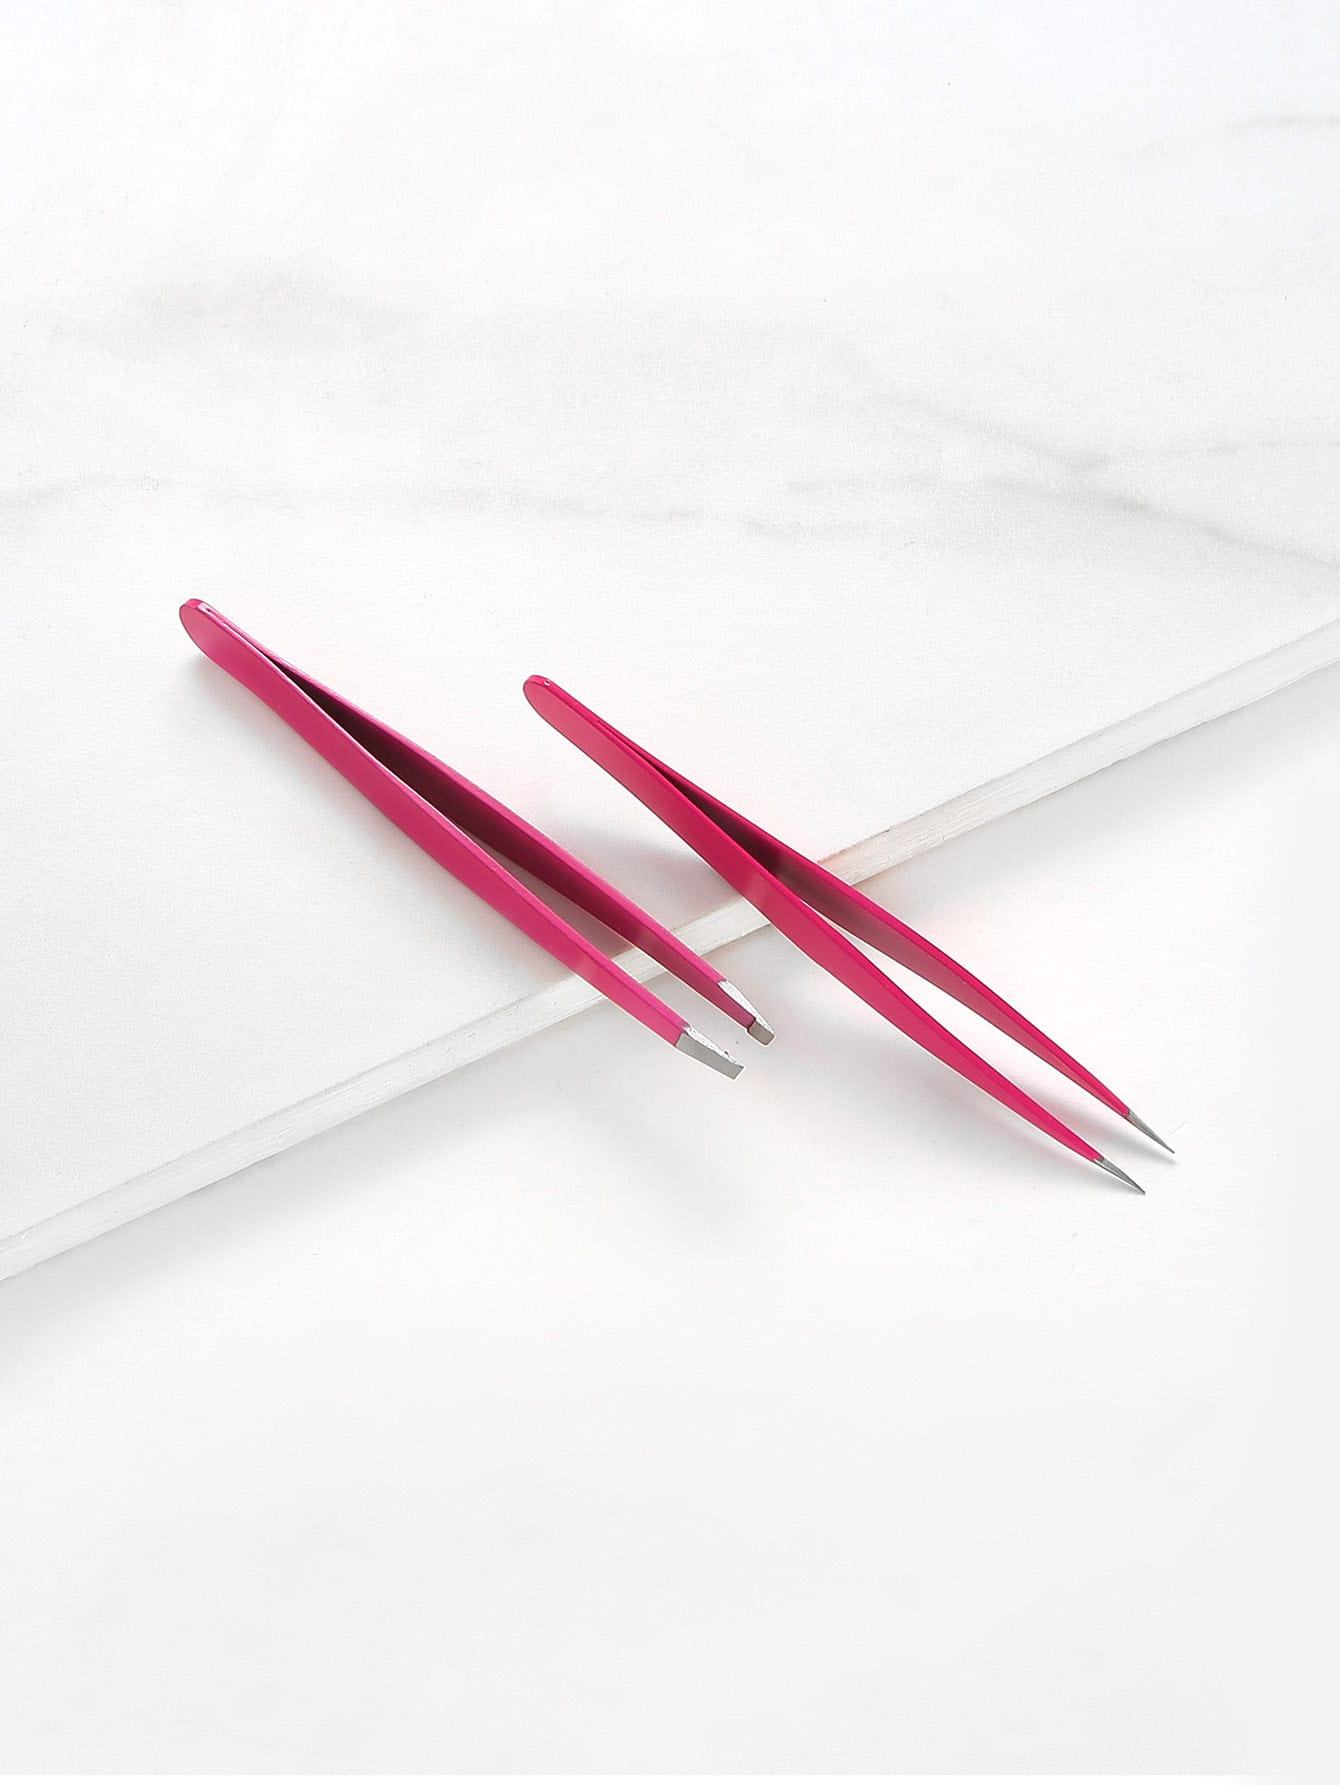 Slant & Tip Eyebrow Tweezers Set 2pcs beauty171009305